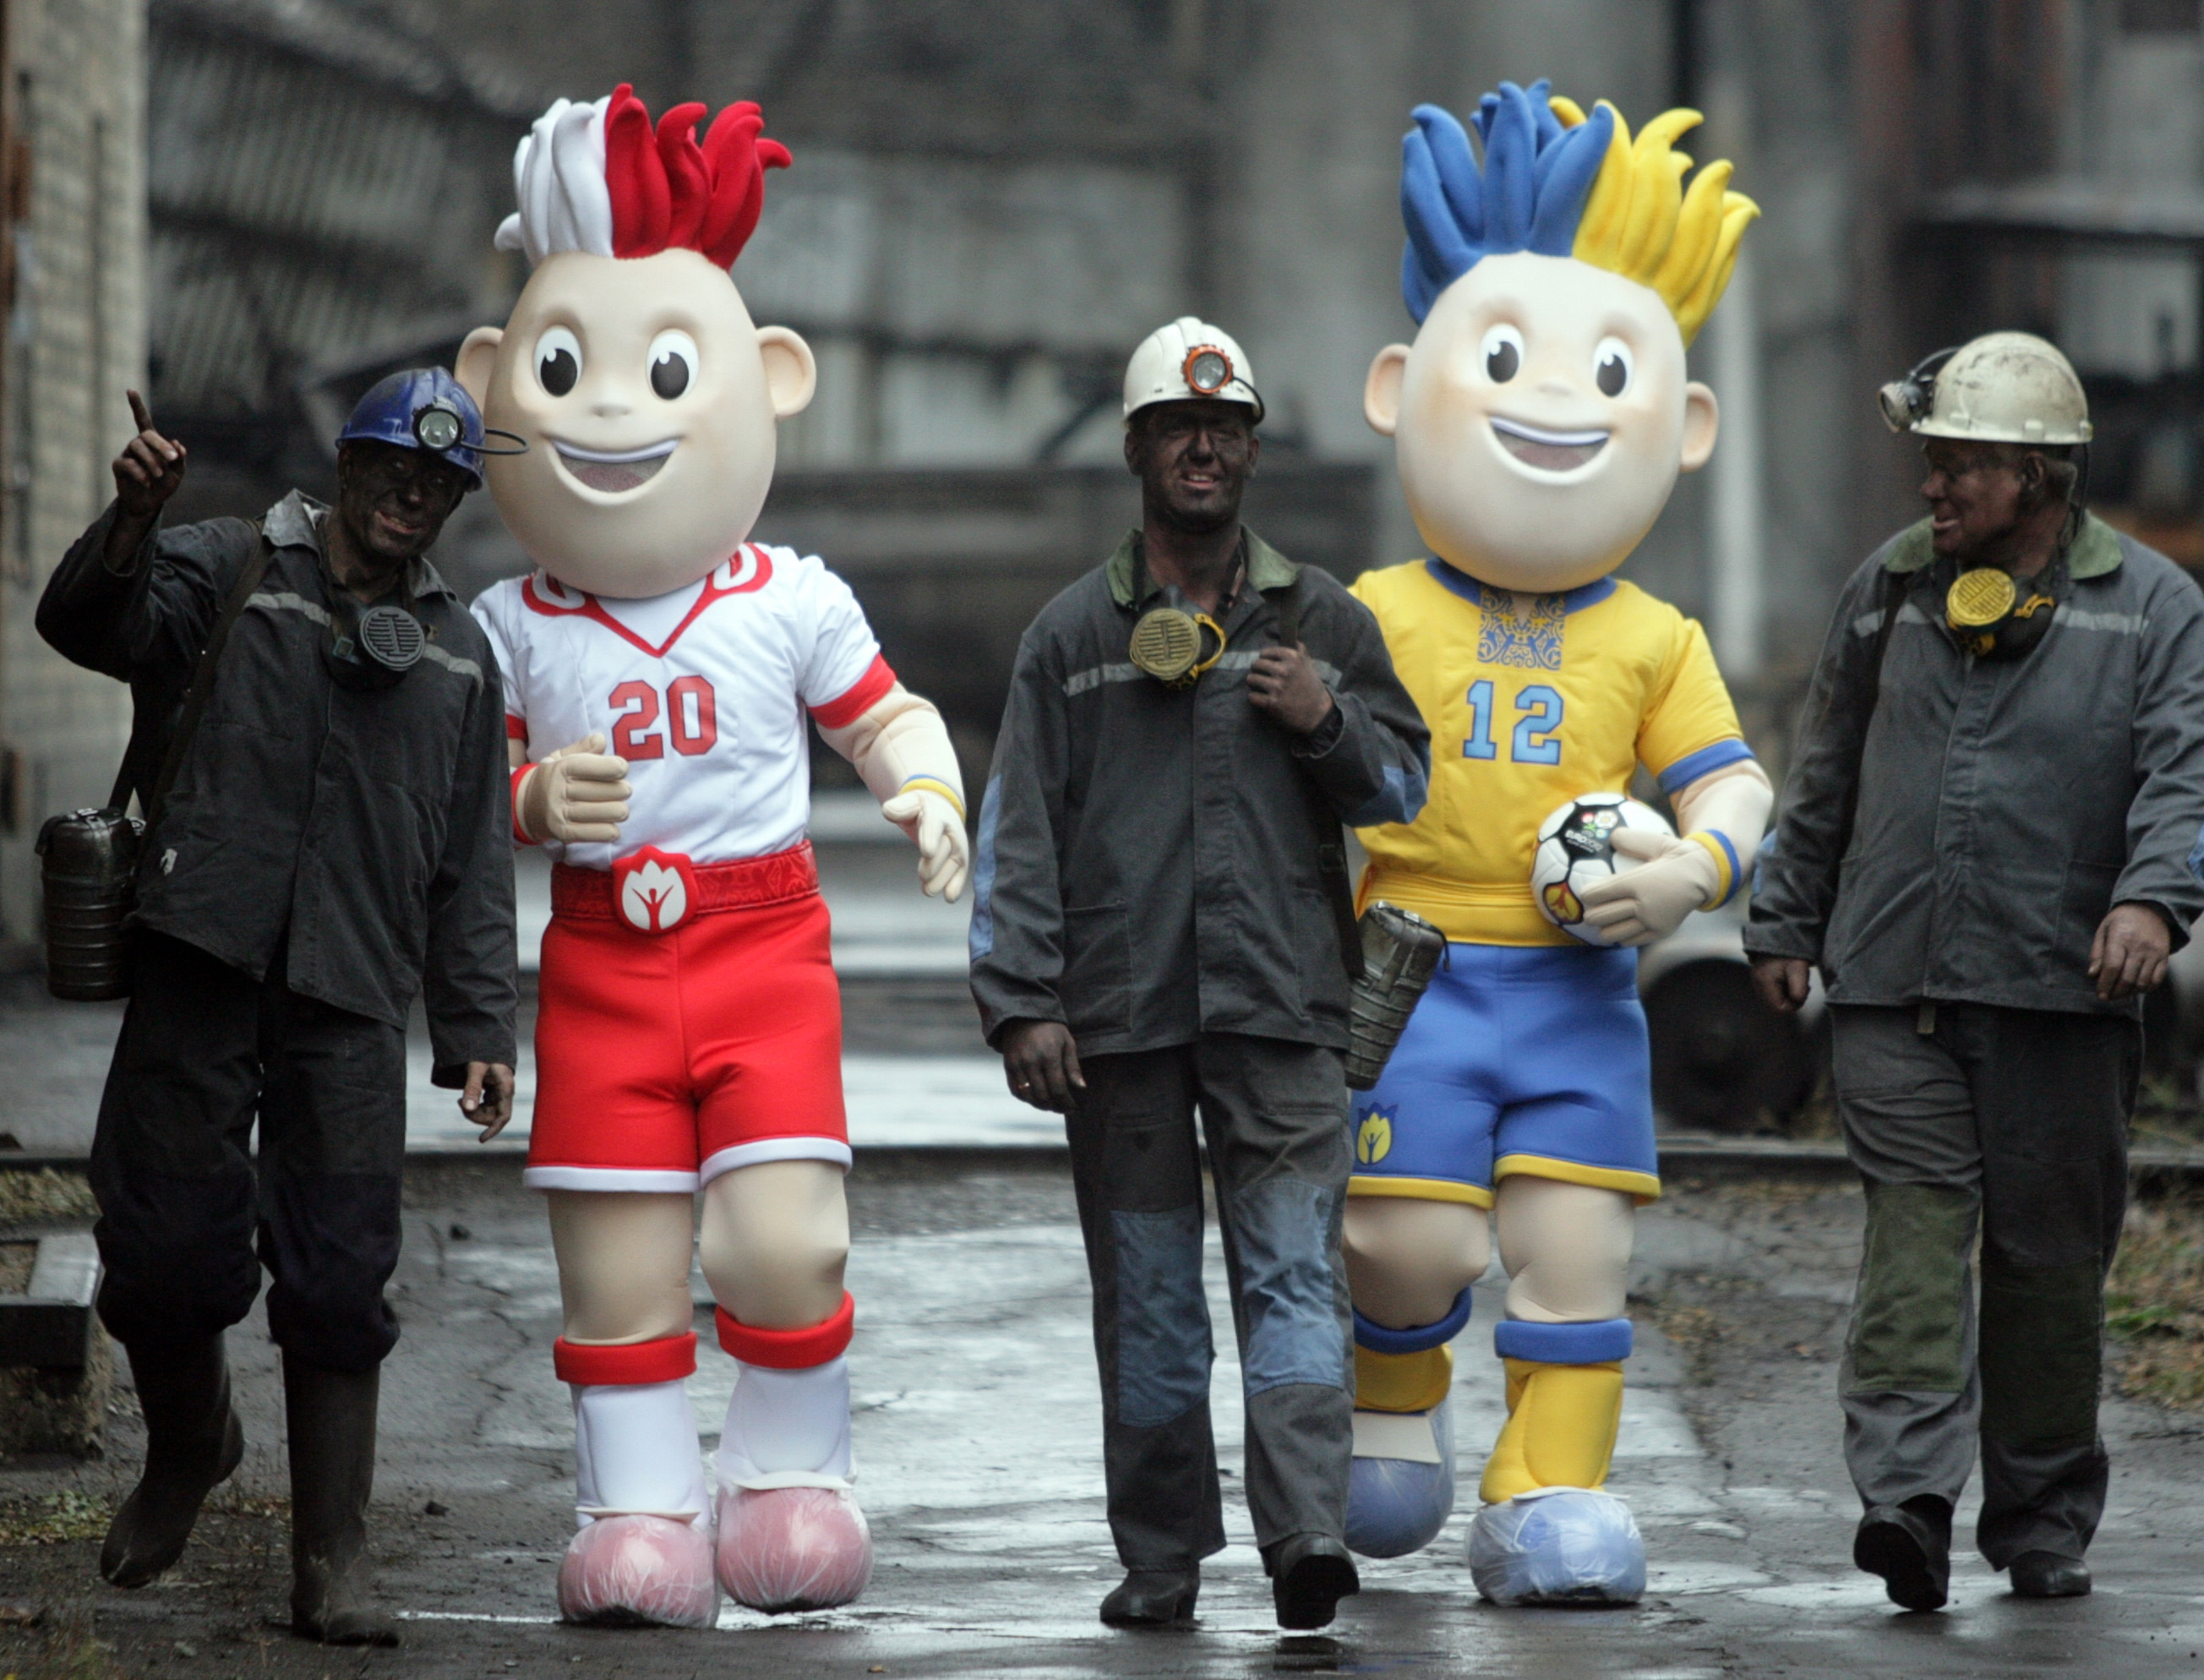 The Euro 2012 twin mascots - one wearing Ukraine's national blue and yellow colours, the other Poland's white and red - walk with miners in the Kalinin coal mine in the industrial Ukrainian city of Donetsk.